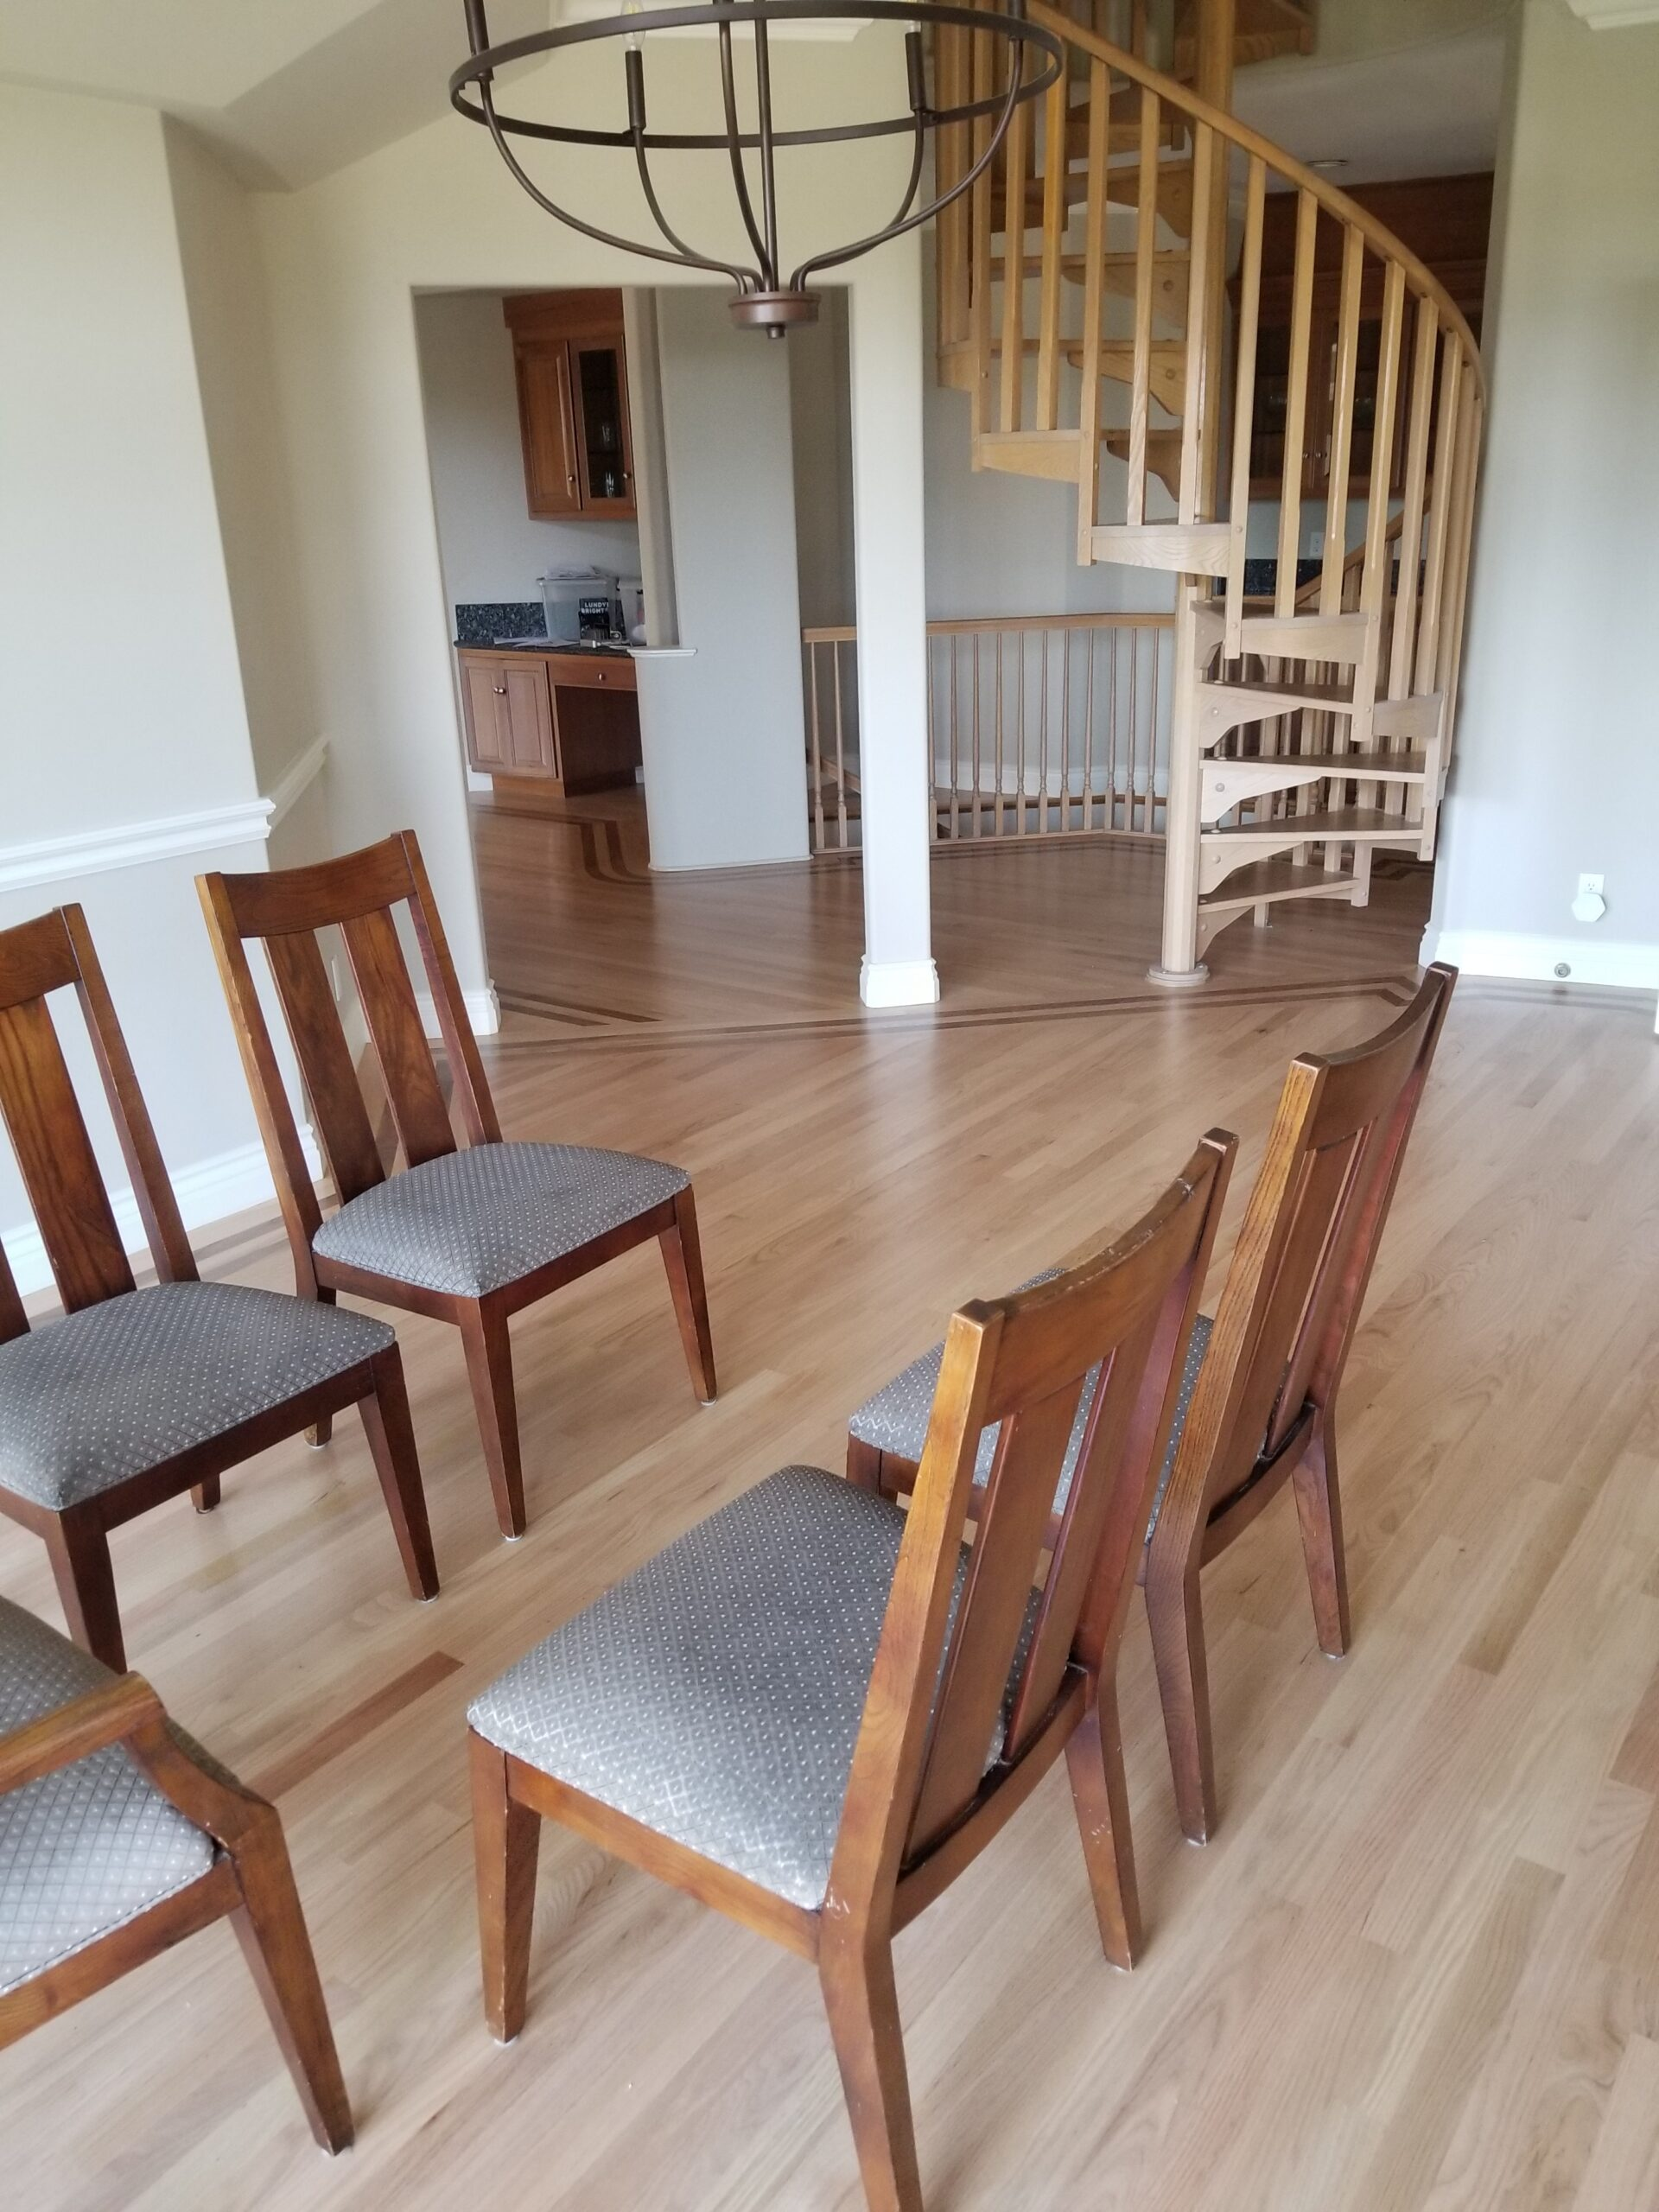 Los Altos Hills residential: same dining room after stain and refinish red oak flooring.